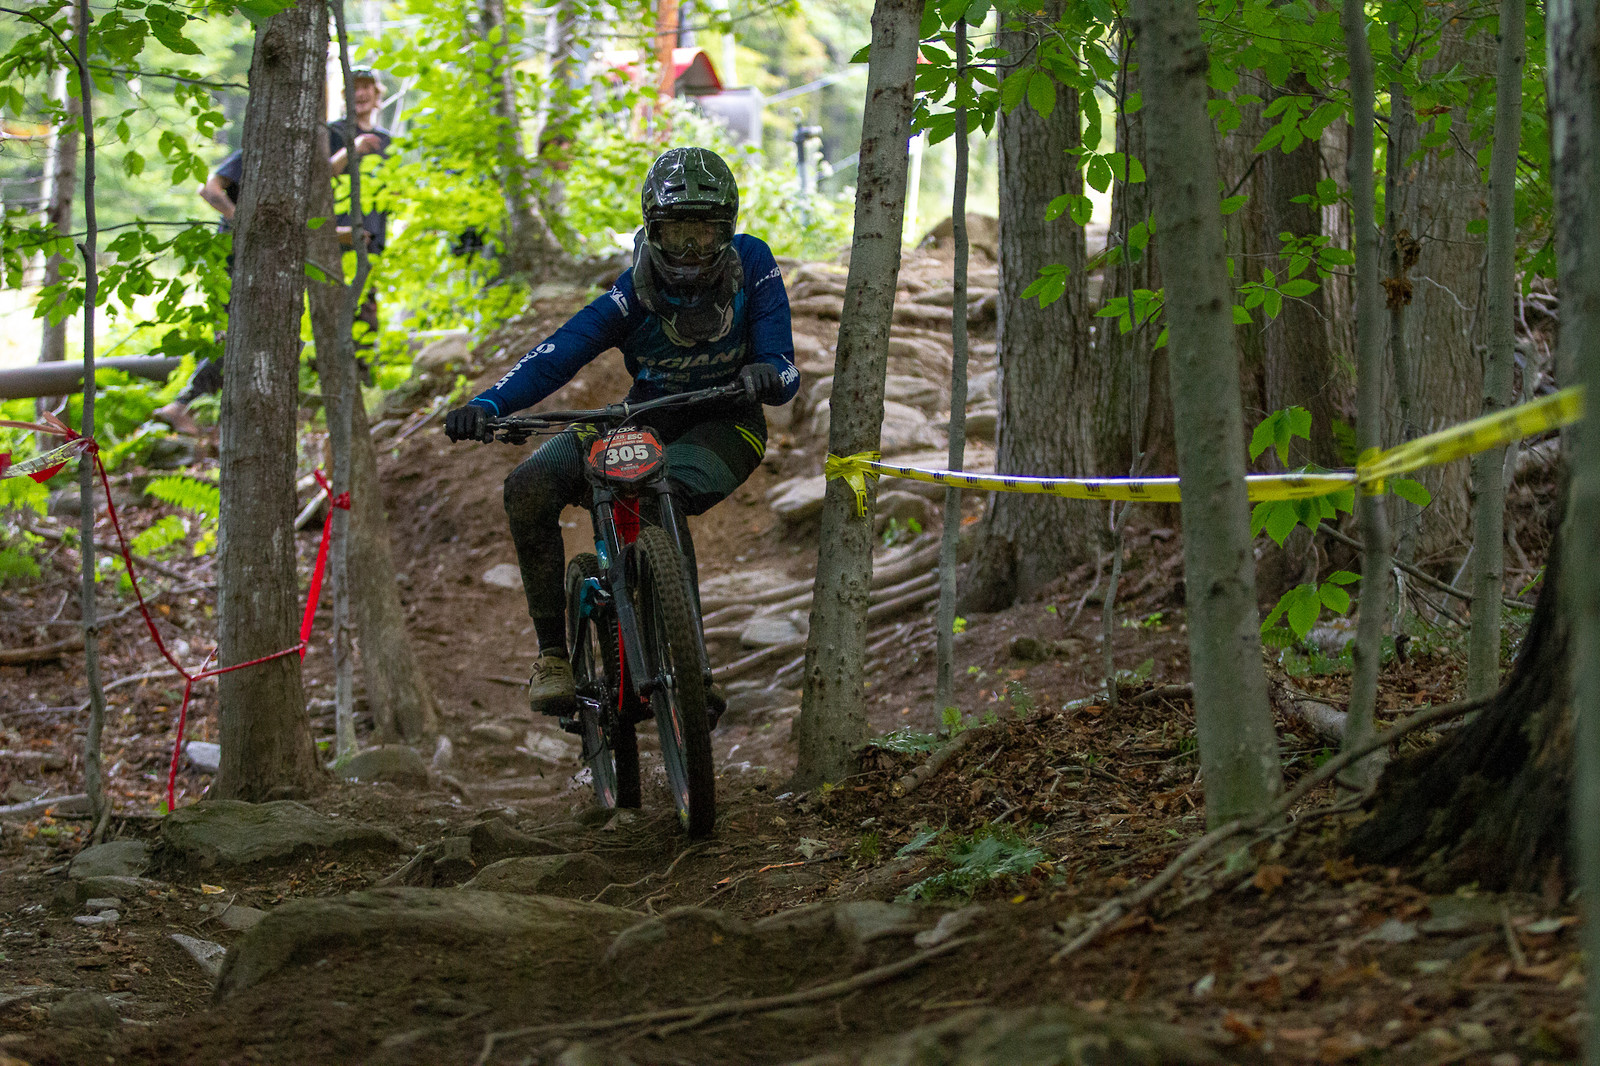 Photo Blast - Eastern States Cup Downhill at Thunder Mountain Bike Park - JackRice - Mountain Biking Pictures - Vital MTB